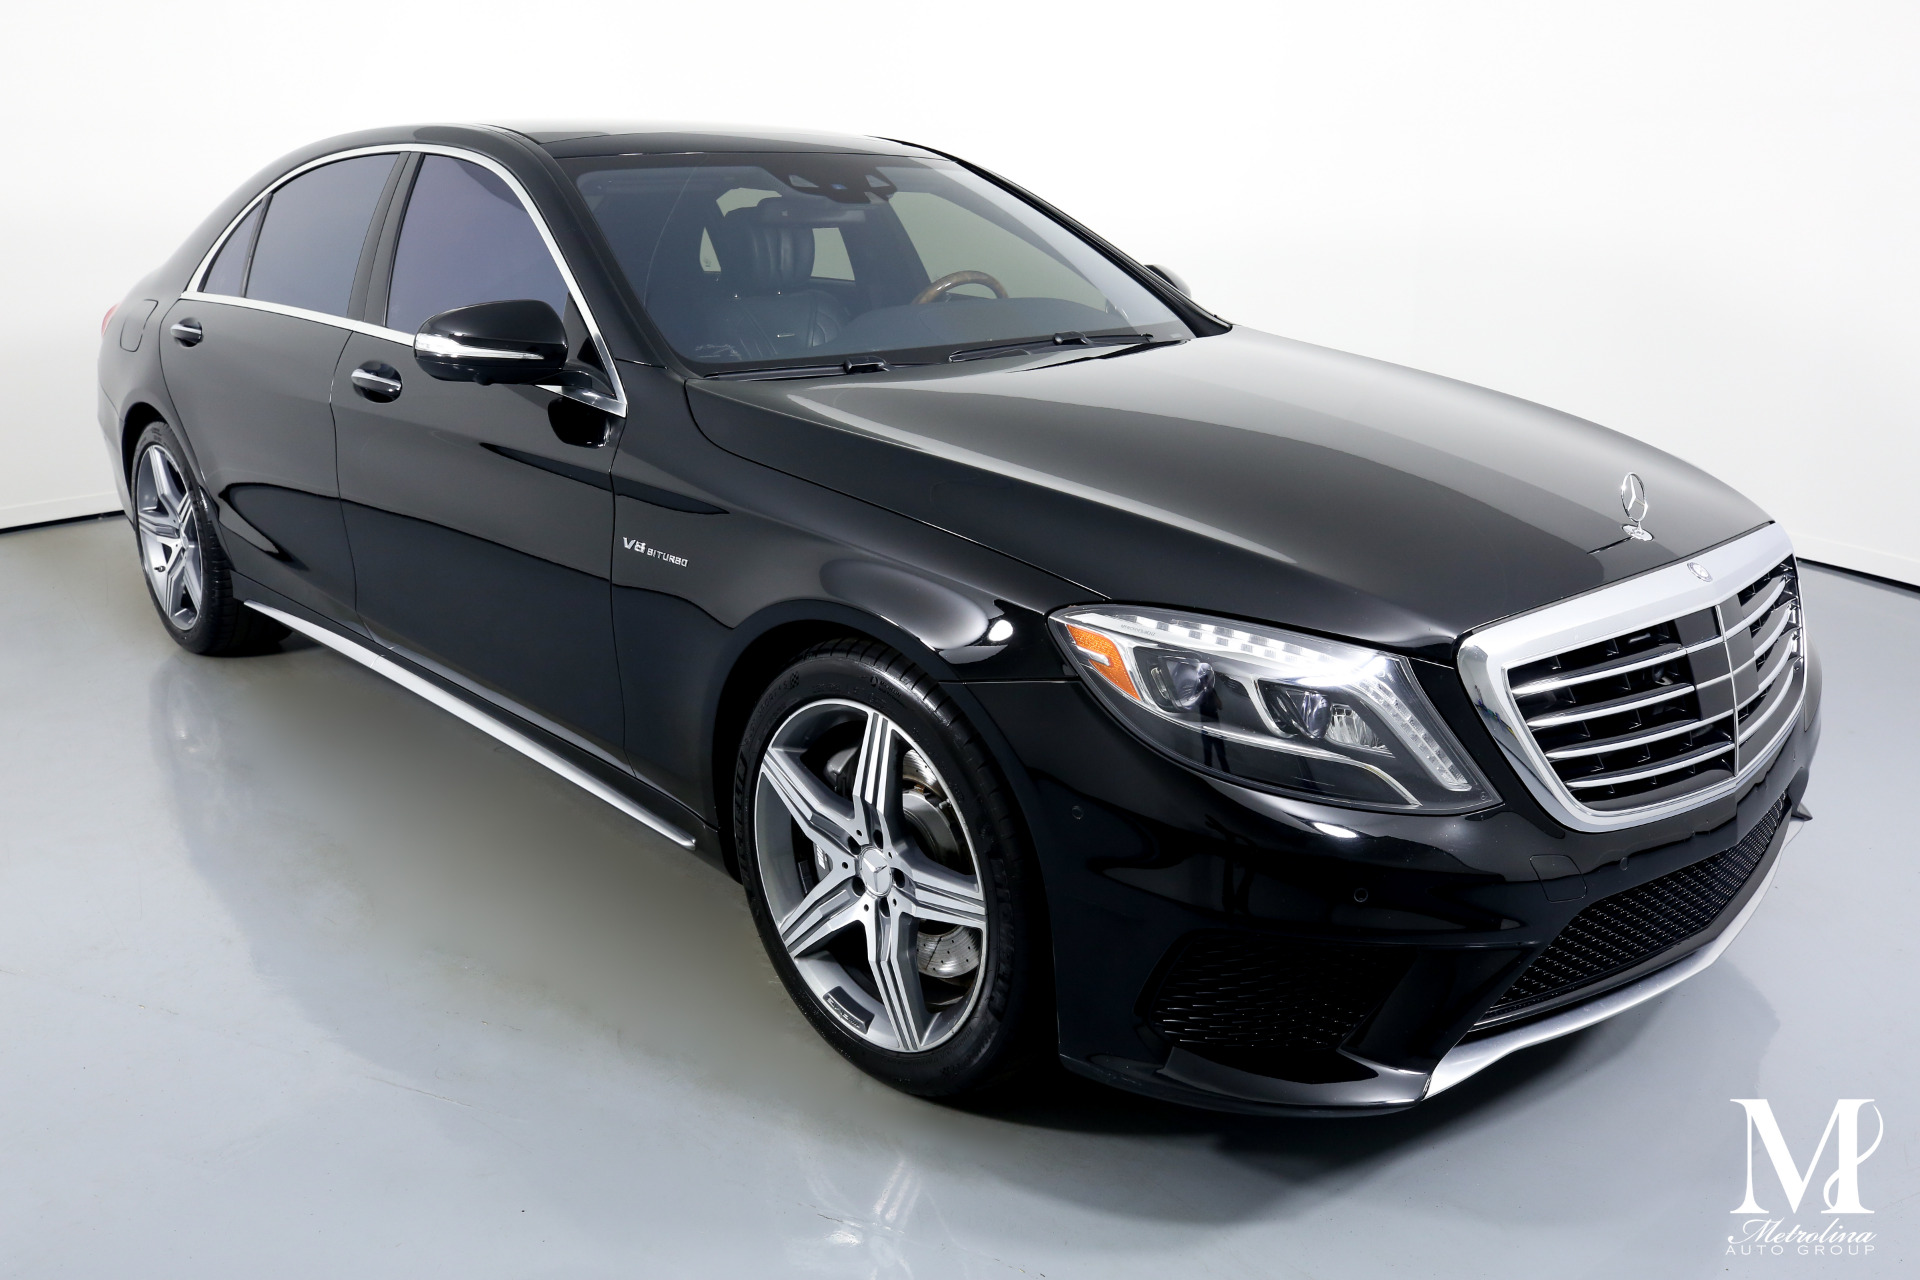 Used 2014 Mercedes-Benz S-Class S 63 AMG for sale Sold at Metrolina Auto Group in Charlotte NC 28217 - 2